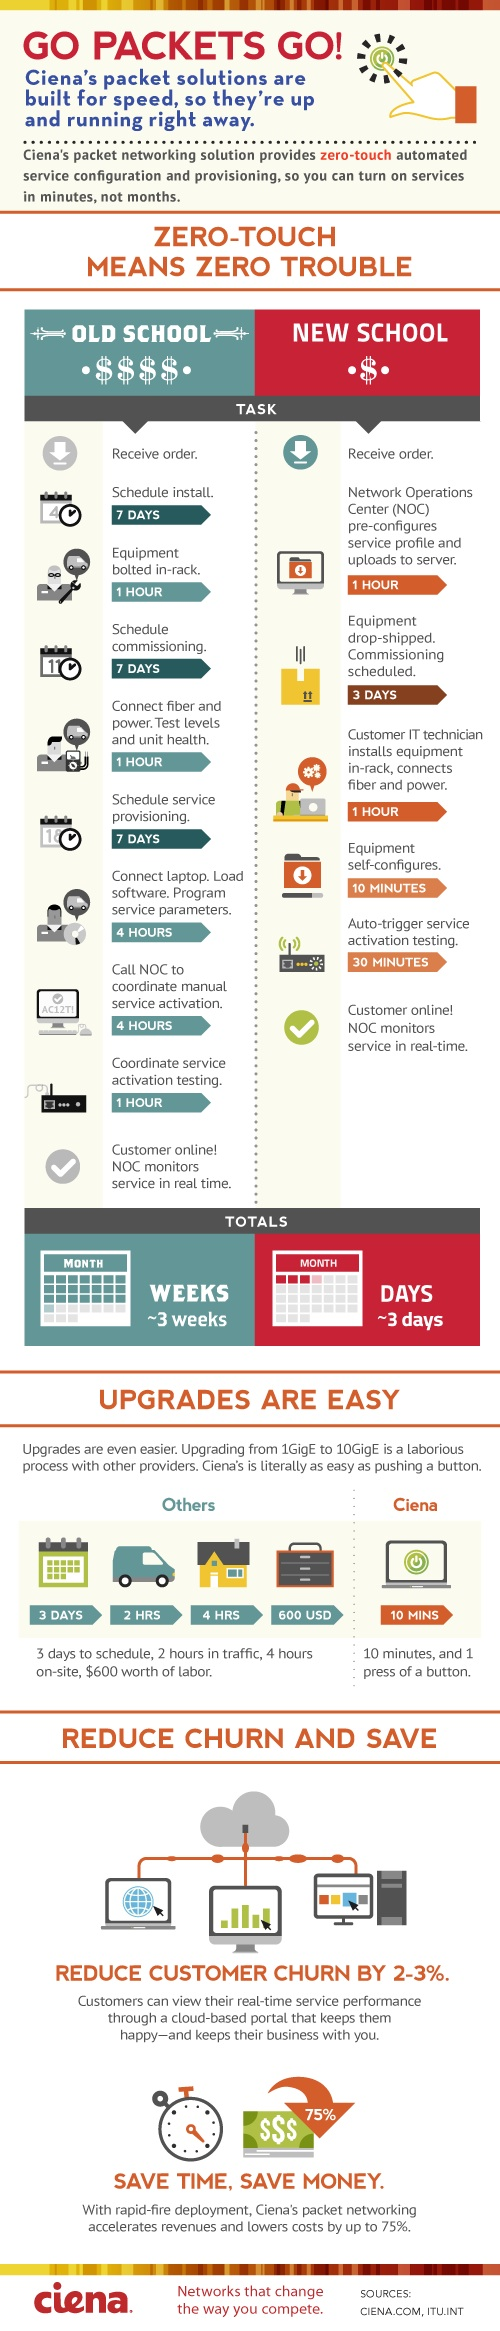 Infographic: Zero-Touch Ethernet Services Provisioning